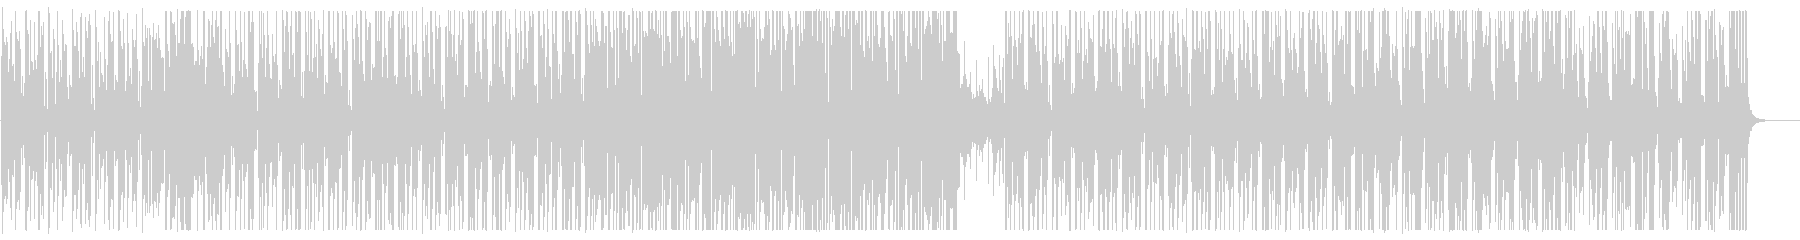 A slow xylophone synthesizer song's unreproduced waveform